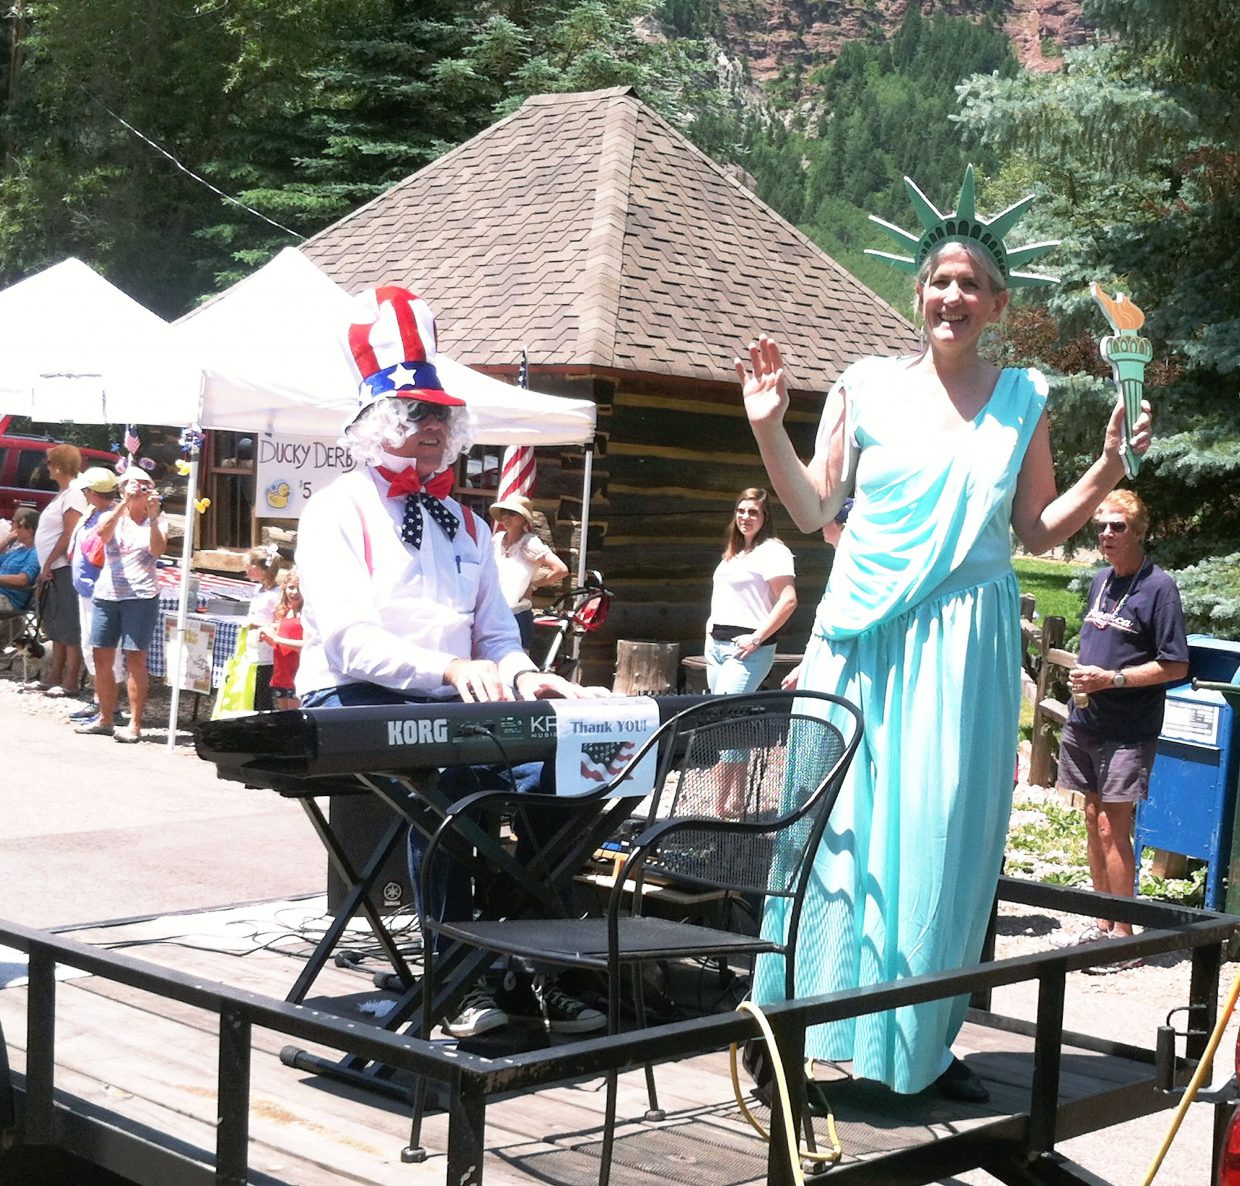 John and Libby Riger dressed as Uncle Sam and Lady Liberty for the Redstone Fourth of July parade, with John playing patriotic songs on his keyboard